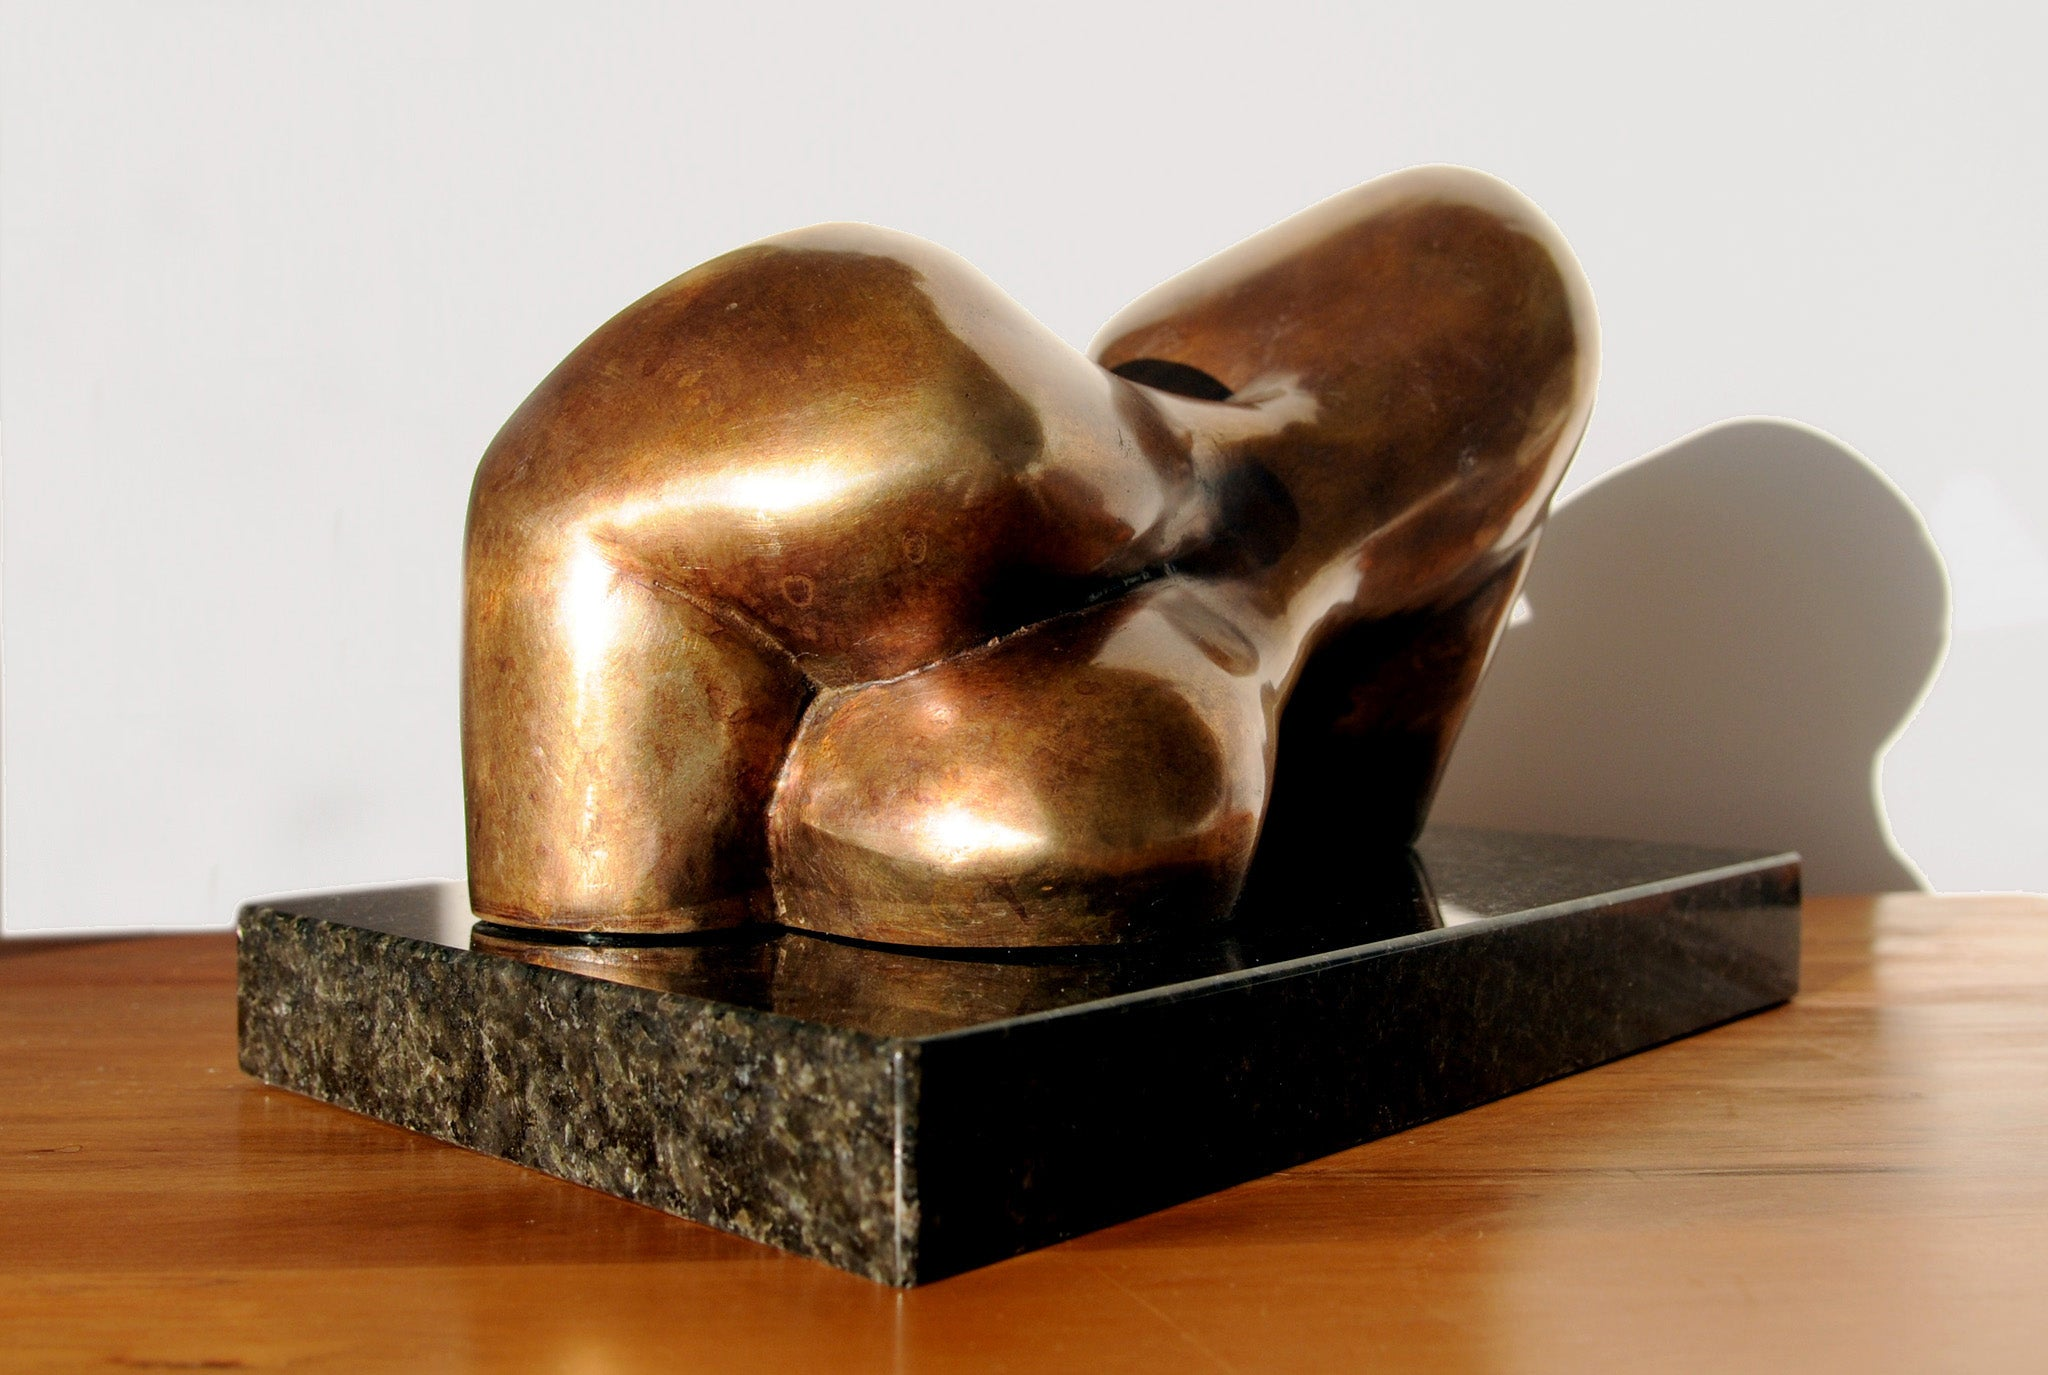 Reclining figure cubist bronze sculpture for sale by Stephen Williams